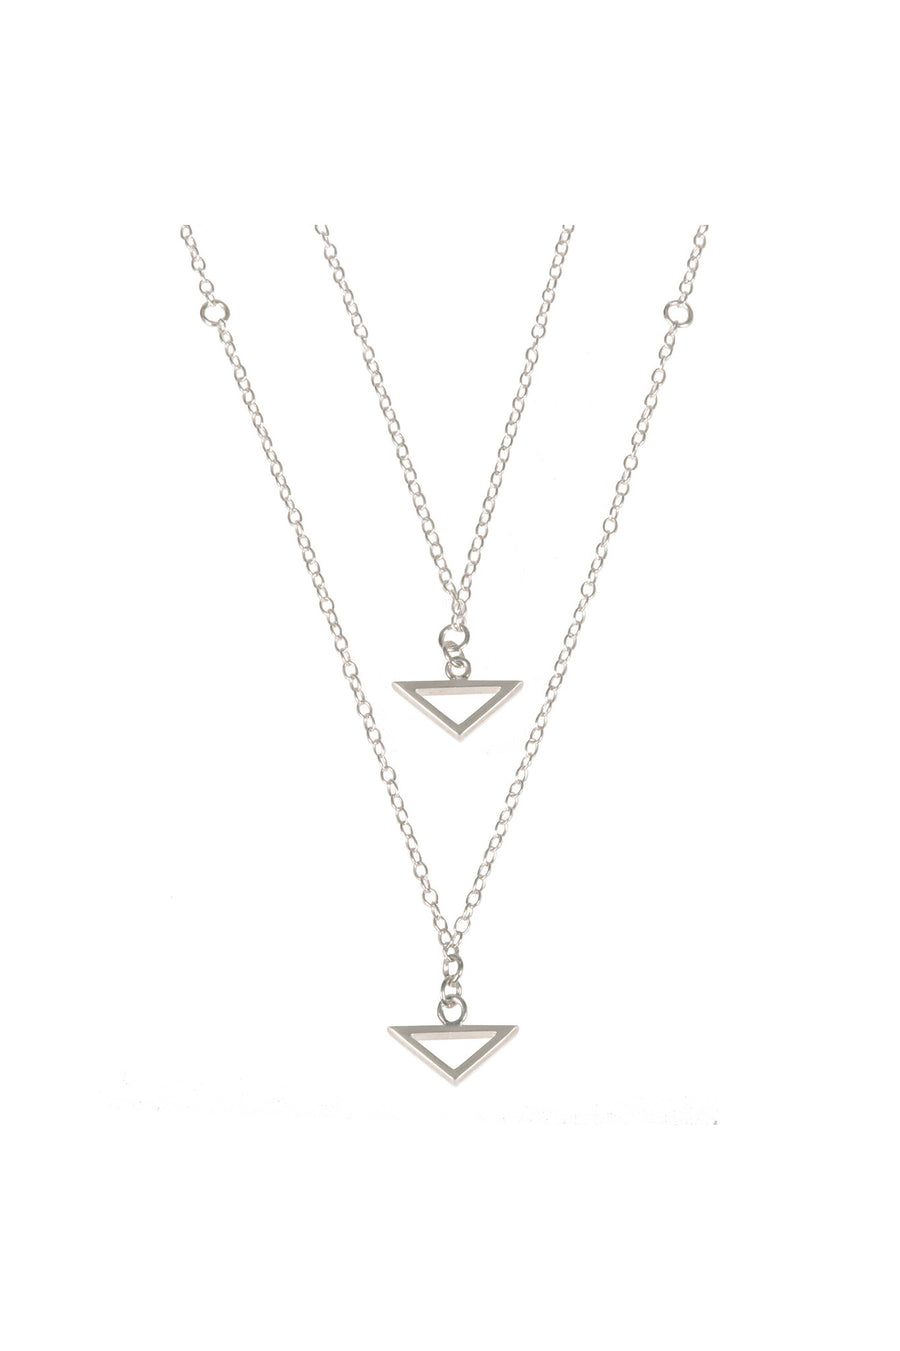 Double Trouble, Silver Multi-Layered Necklace